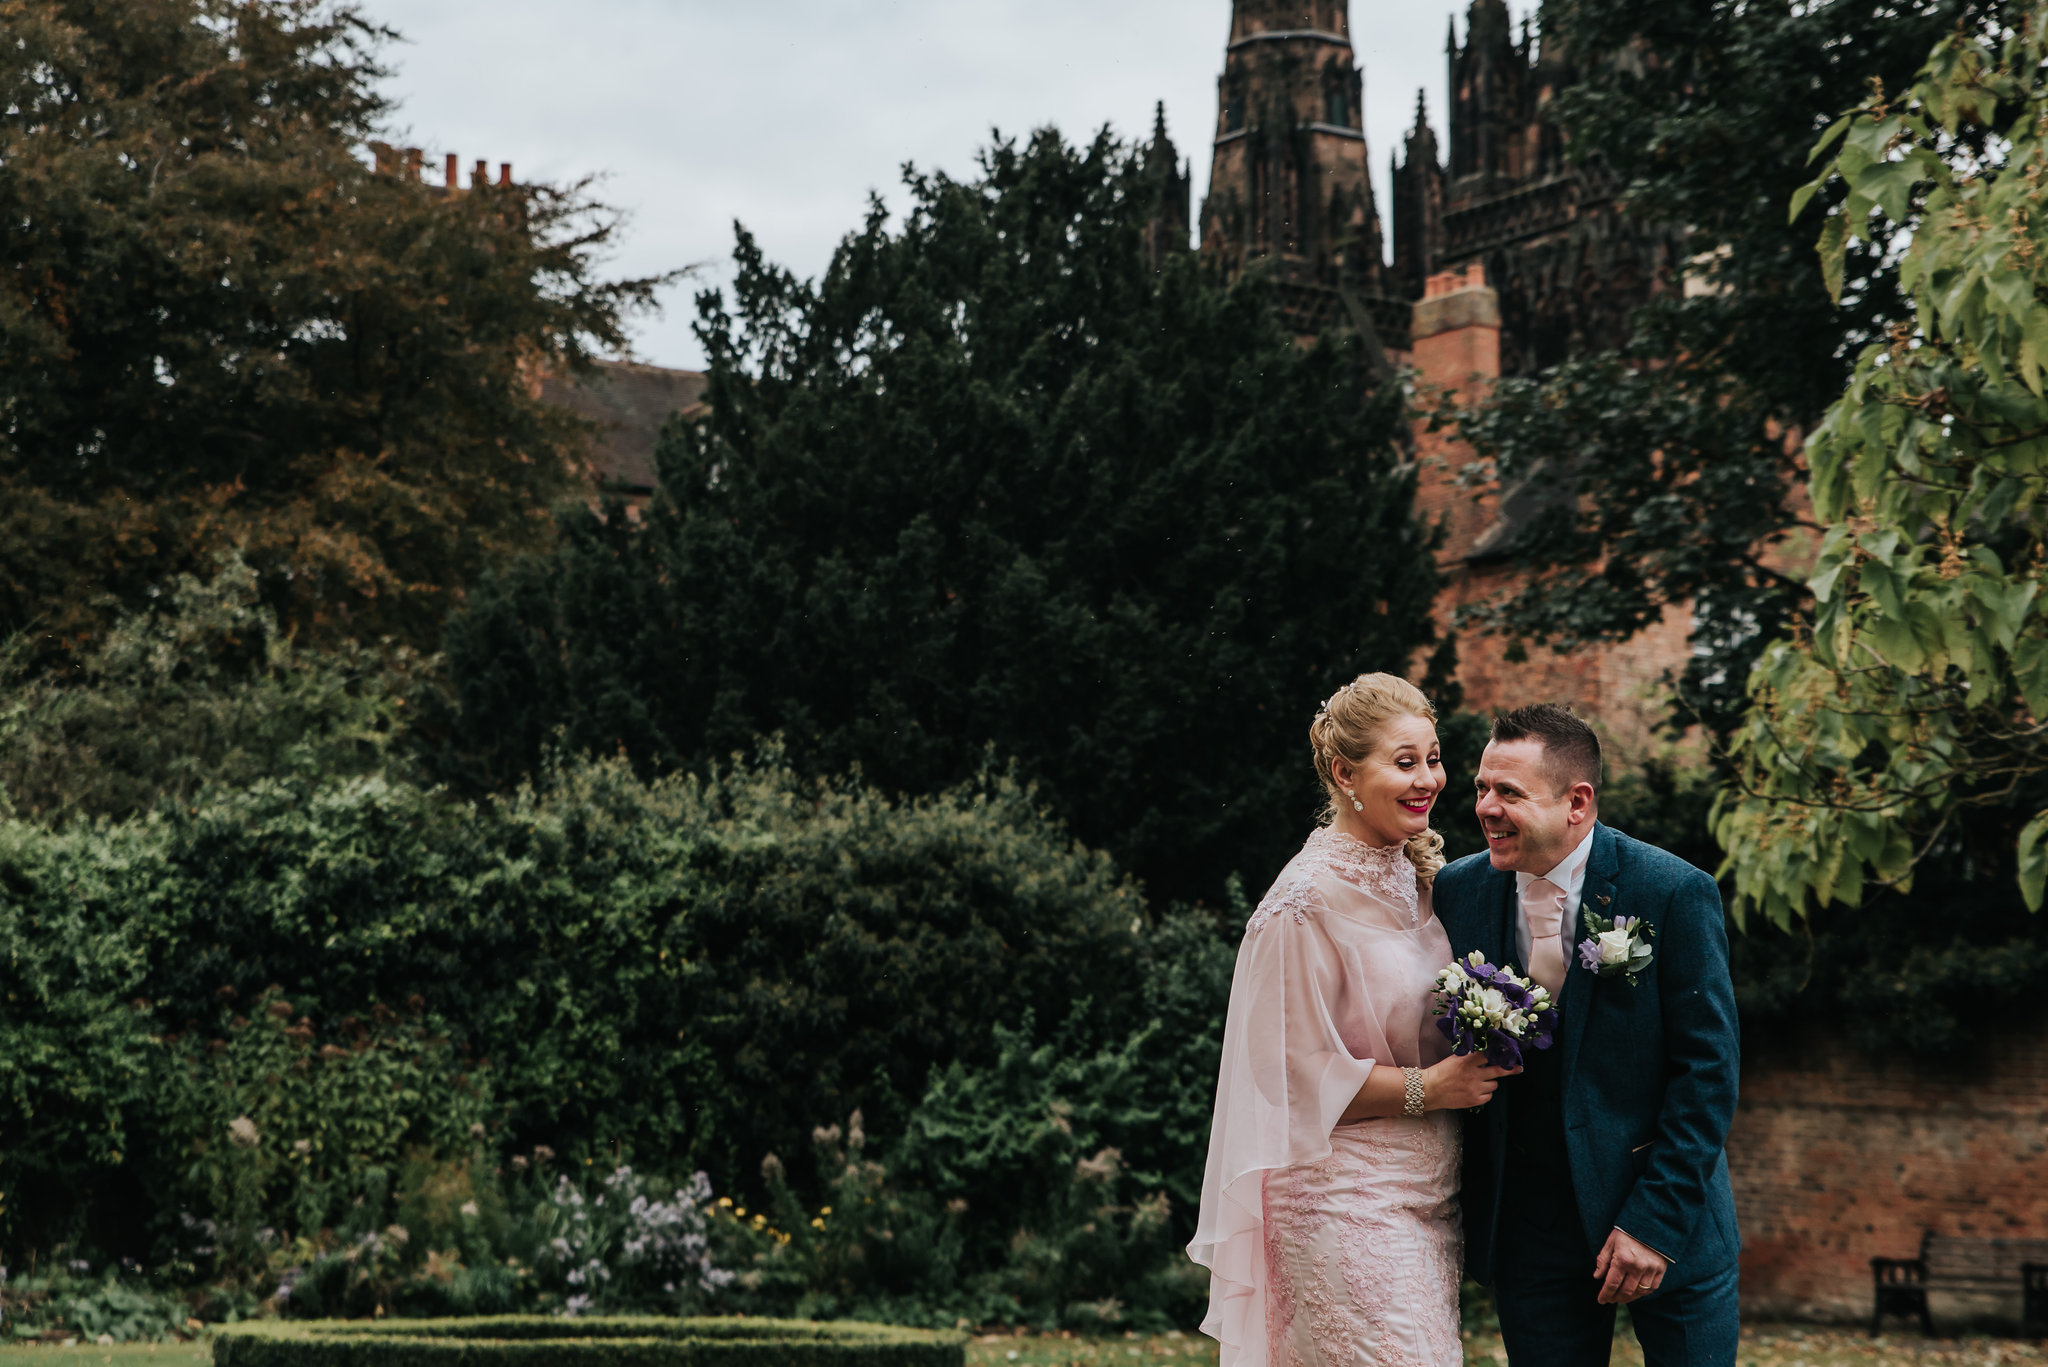 wedding-day-lichfield-cathedral-bride-groom-laughing-together